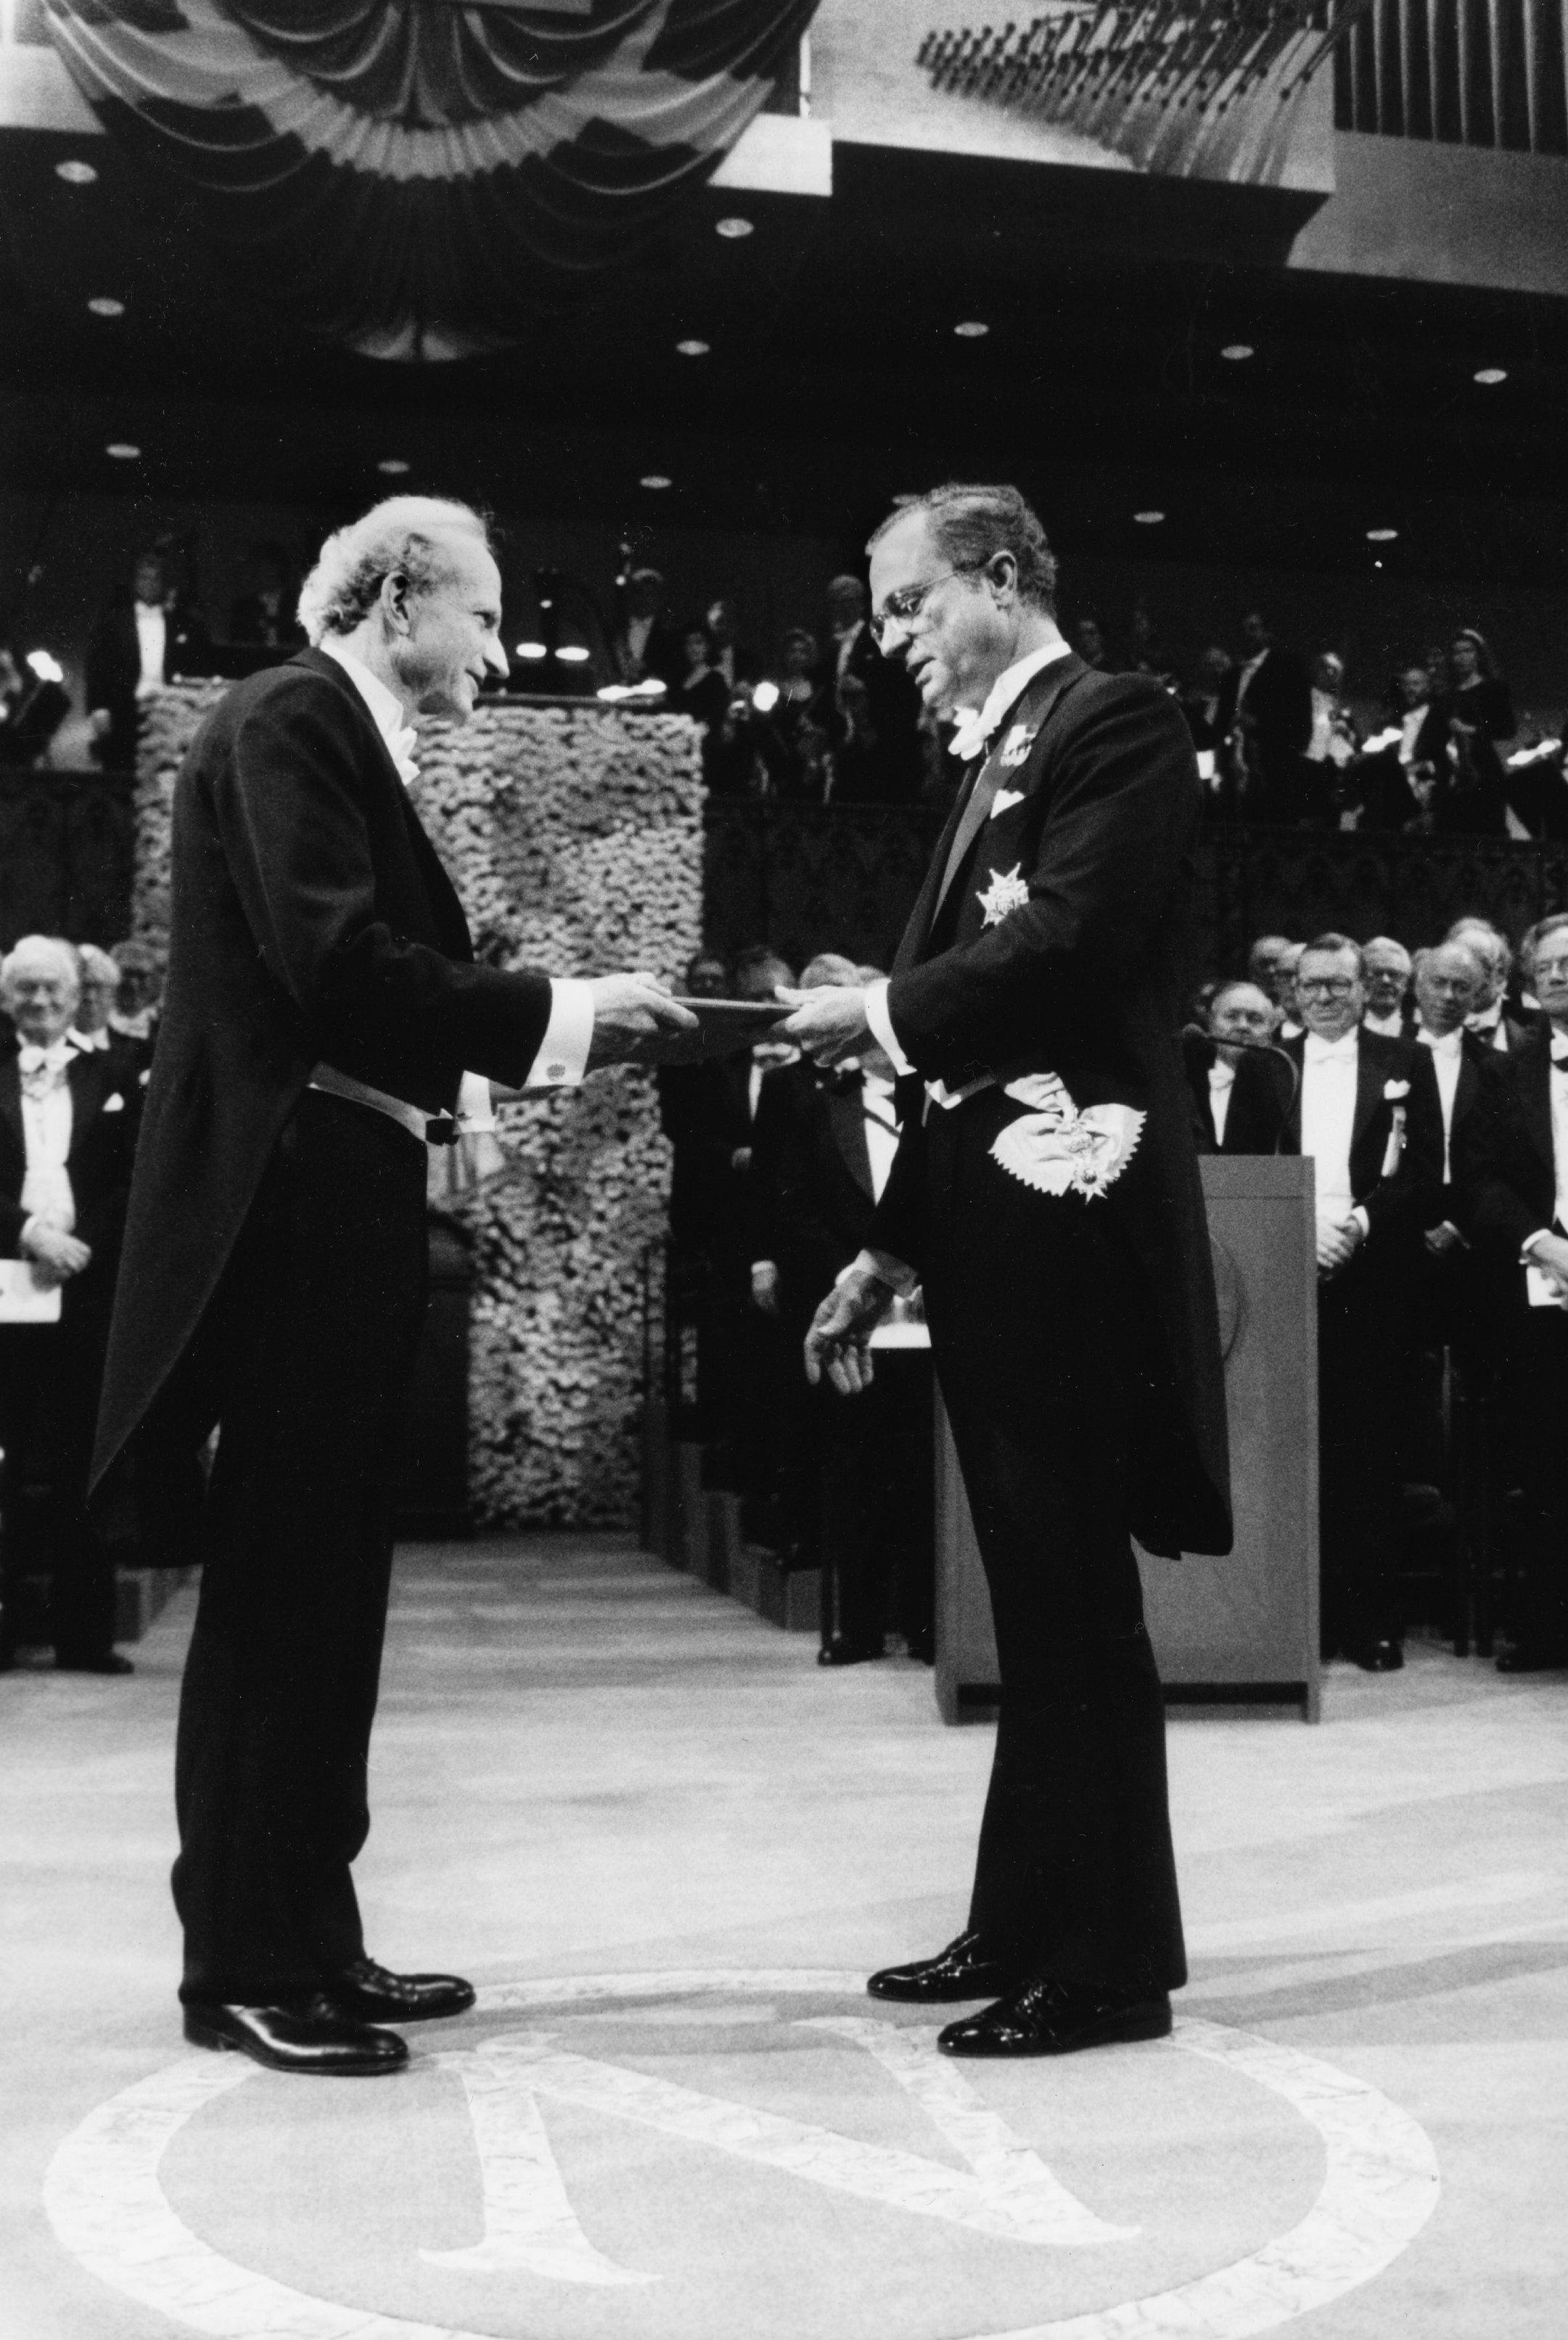 Gary S. Becker, left, from the University of Chicago, receives the 1992 Nobel Economics Prize from the hands of Sweden's King Carl XVI Gustaf, during the Nobel awarding ceremony in the Concert Hall in Stockholm, Sweden.